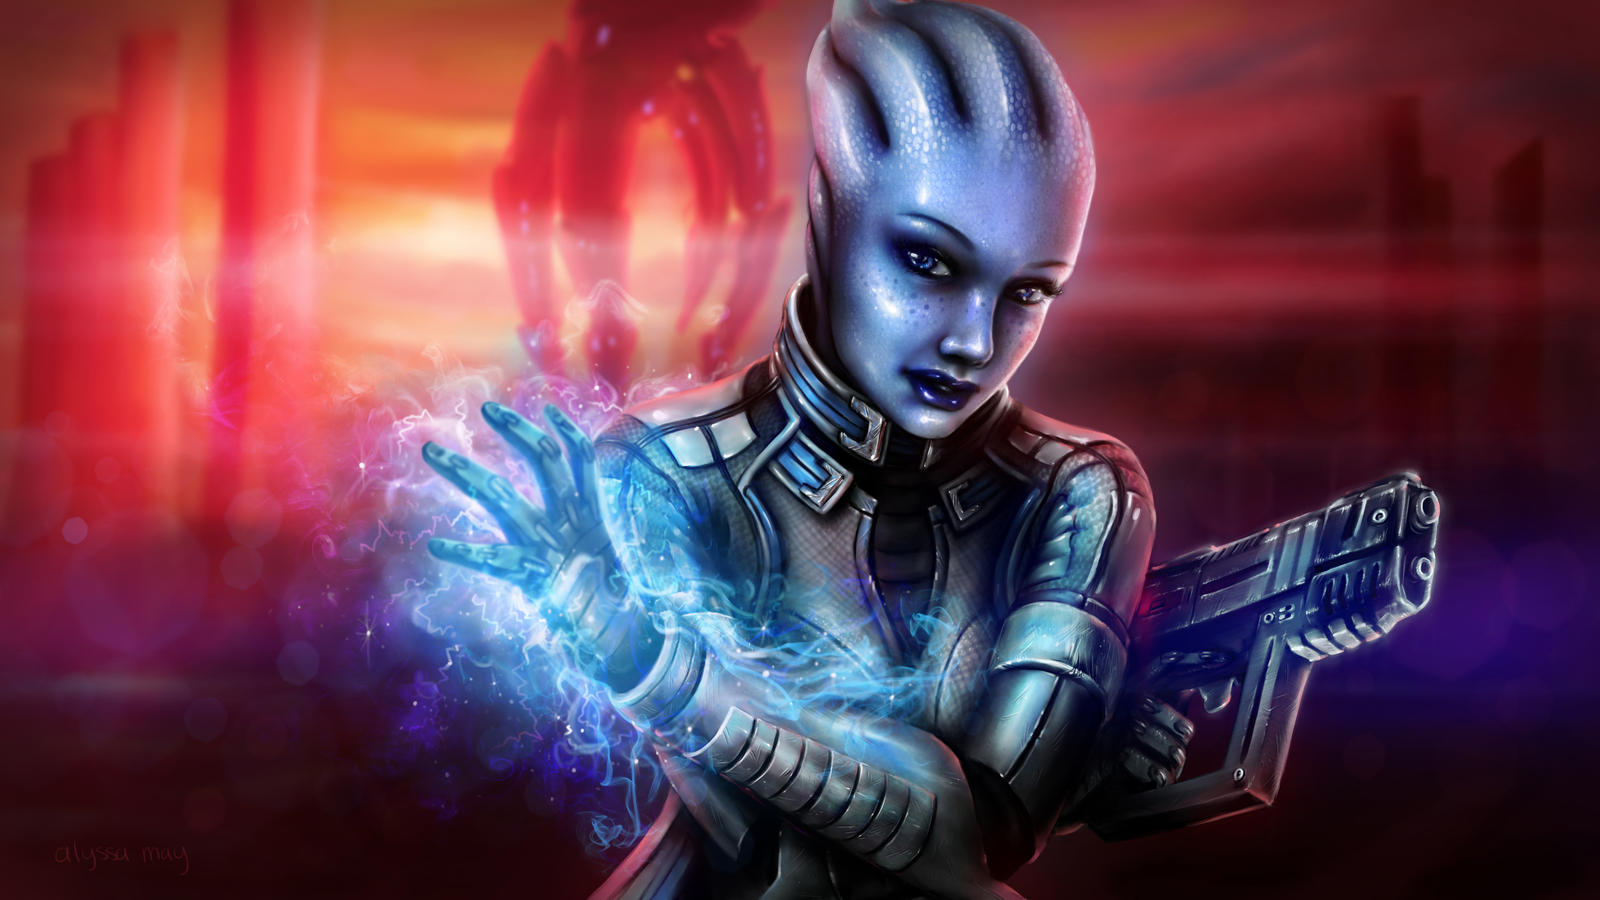 can you hook up with liara in mass effect Although i thought ashley would not talk to you if you talked to liara  1 or 2 side  missions left but i doubt that will open up any dialogue options  with my choice  cause i know it will continue into mass effect 2 right  as i never played me2  without a save from me1 to see what they set as a default history.